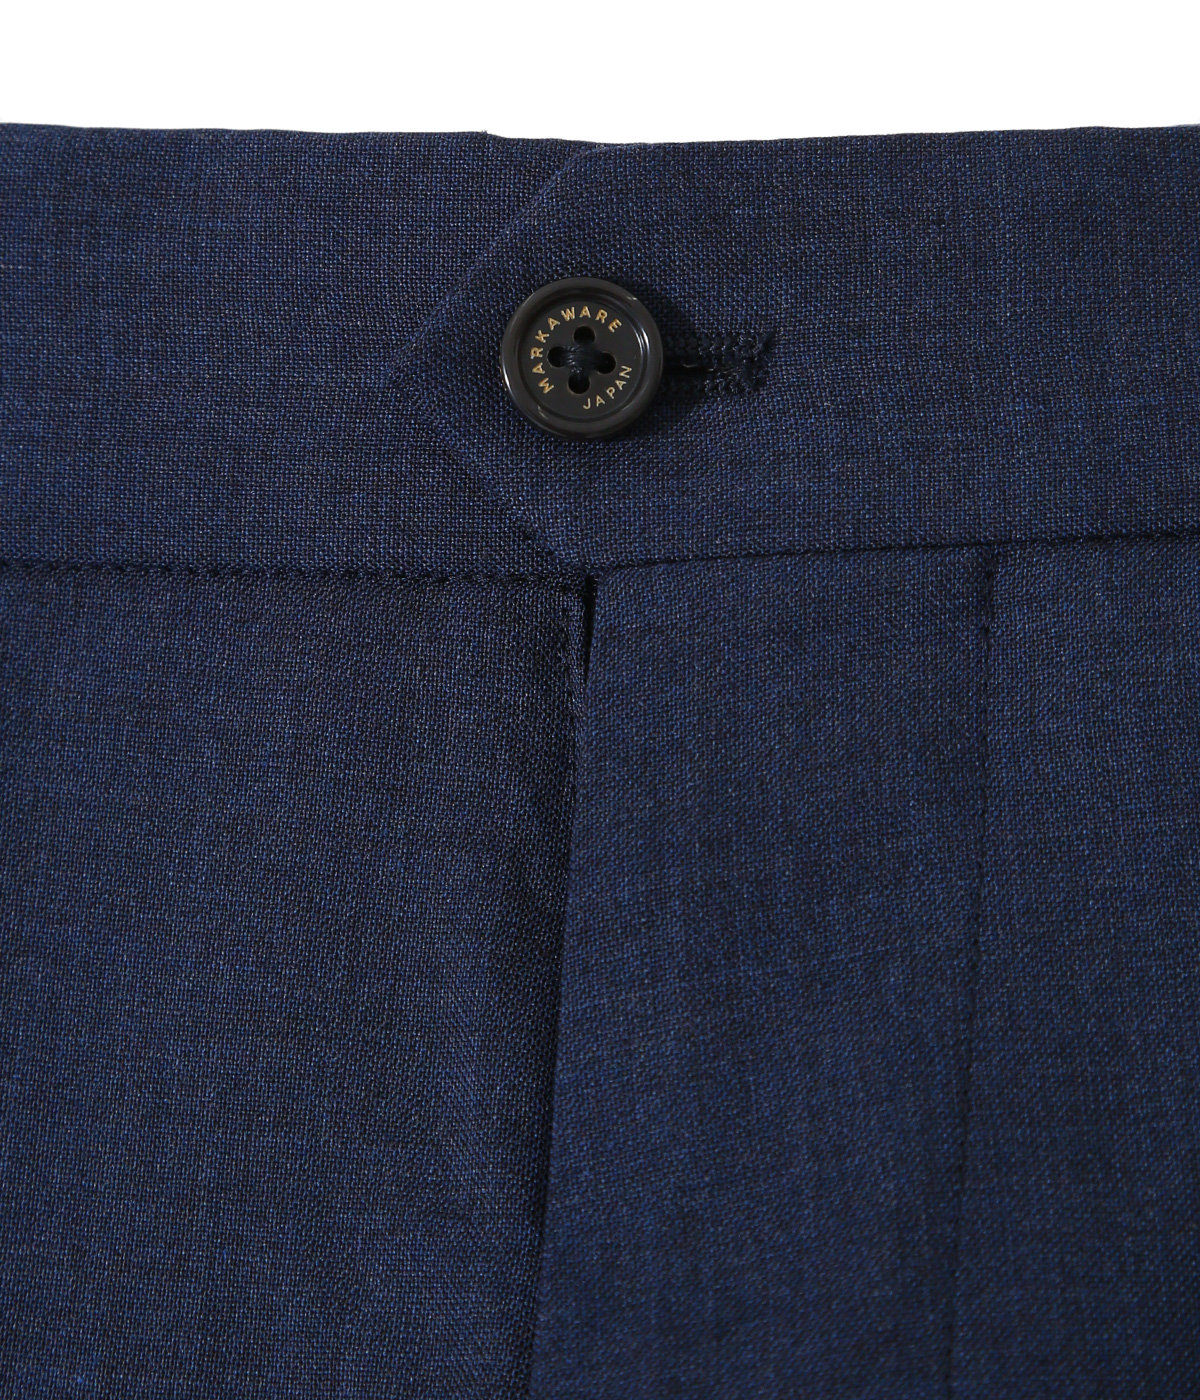 FLAT FRONT TROUSERS - SUPER 120s WOOL TROPICAL -